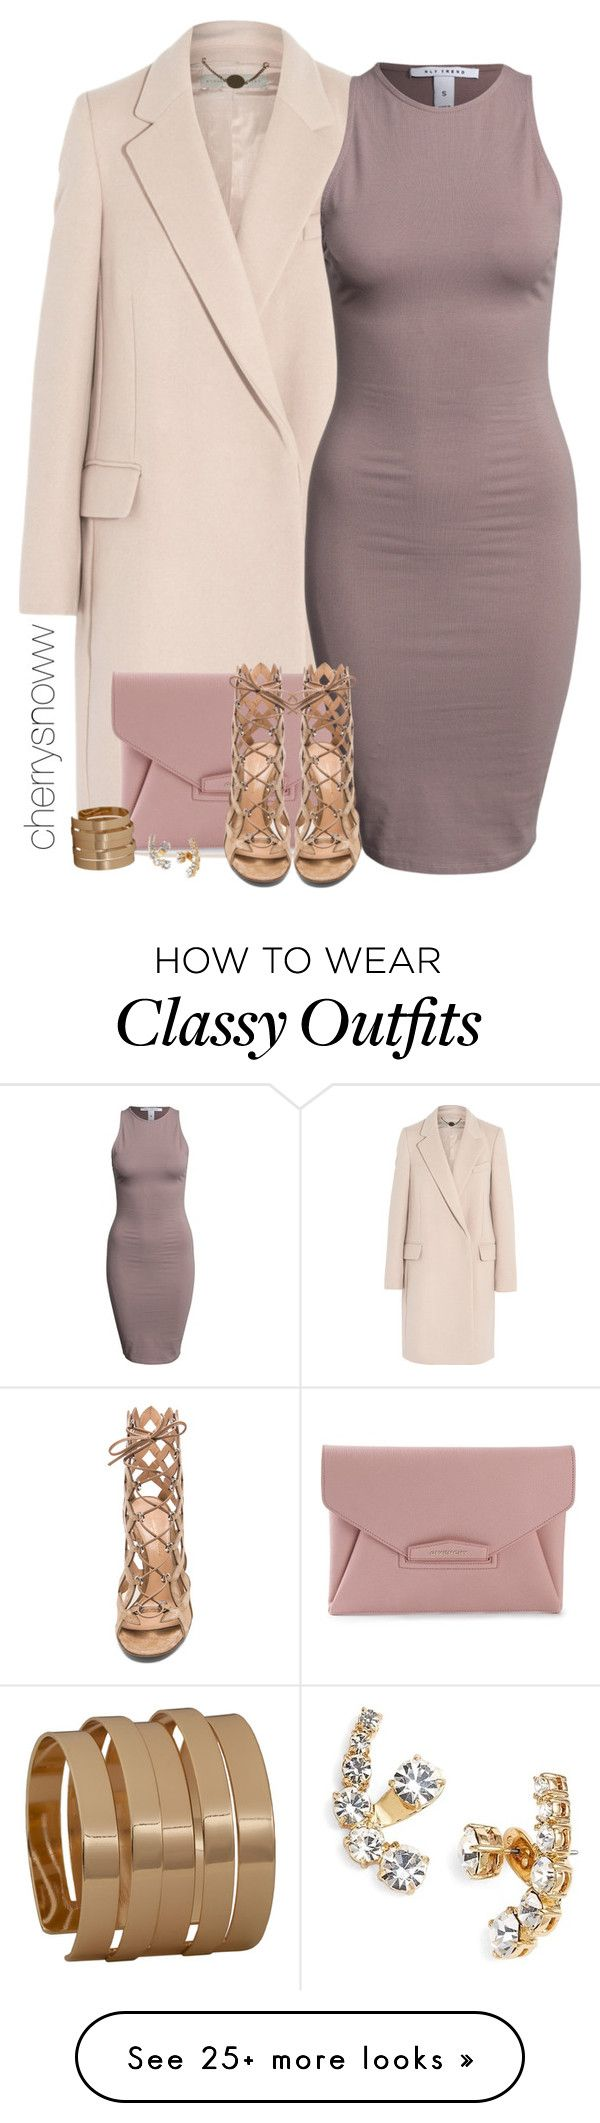 """""""Classy chic bodycon dress and lace up heels outfit"""" by cherrysnoww on Polyvore featuring STELLA McCARTNEY, Givenchy, NLY Trend, Gianvito Rossi, Club Manhattan and Kate Spade"""